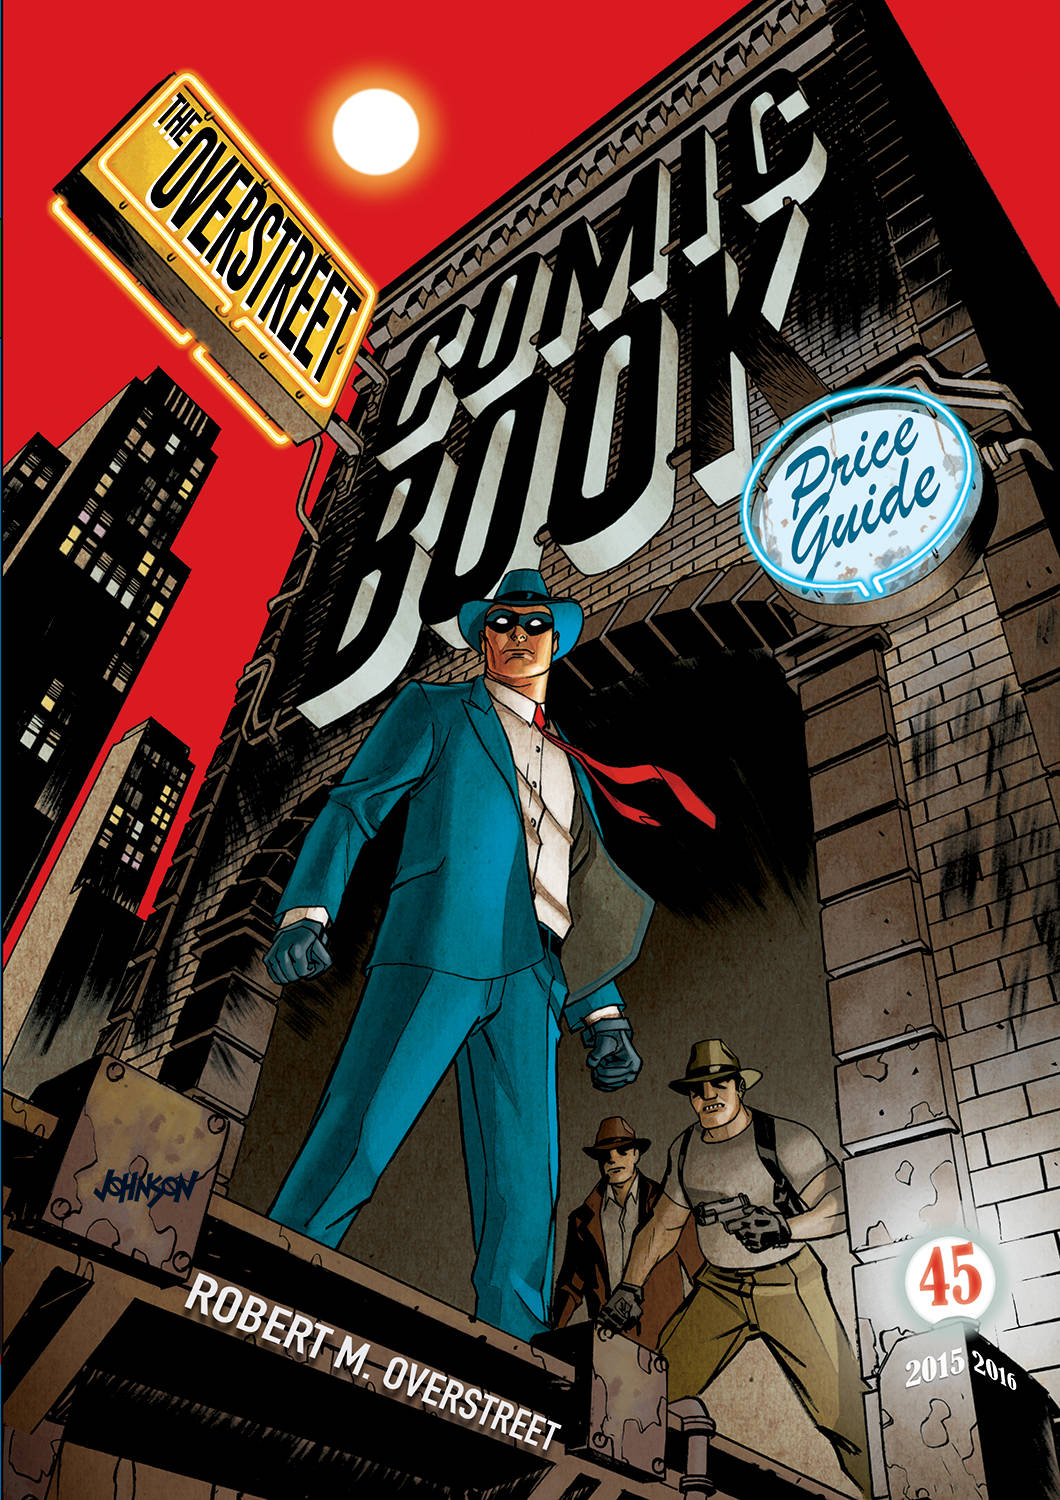 Overstreet Comic Book Price Guide - Convention Scene